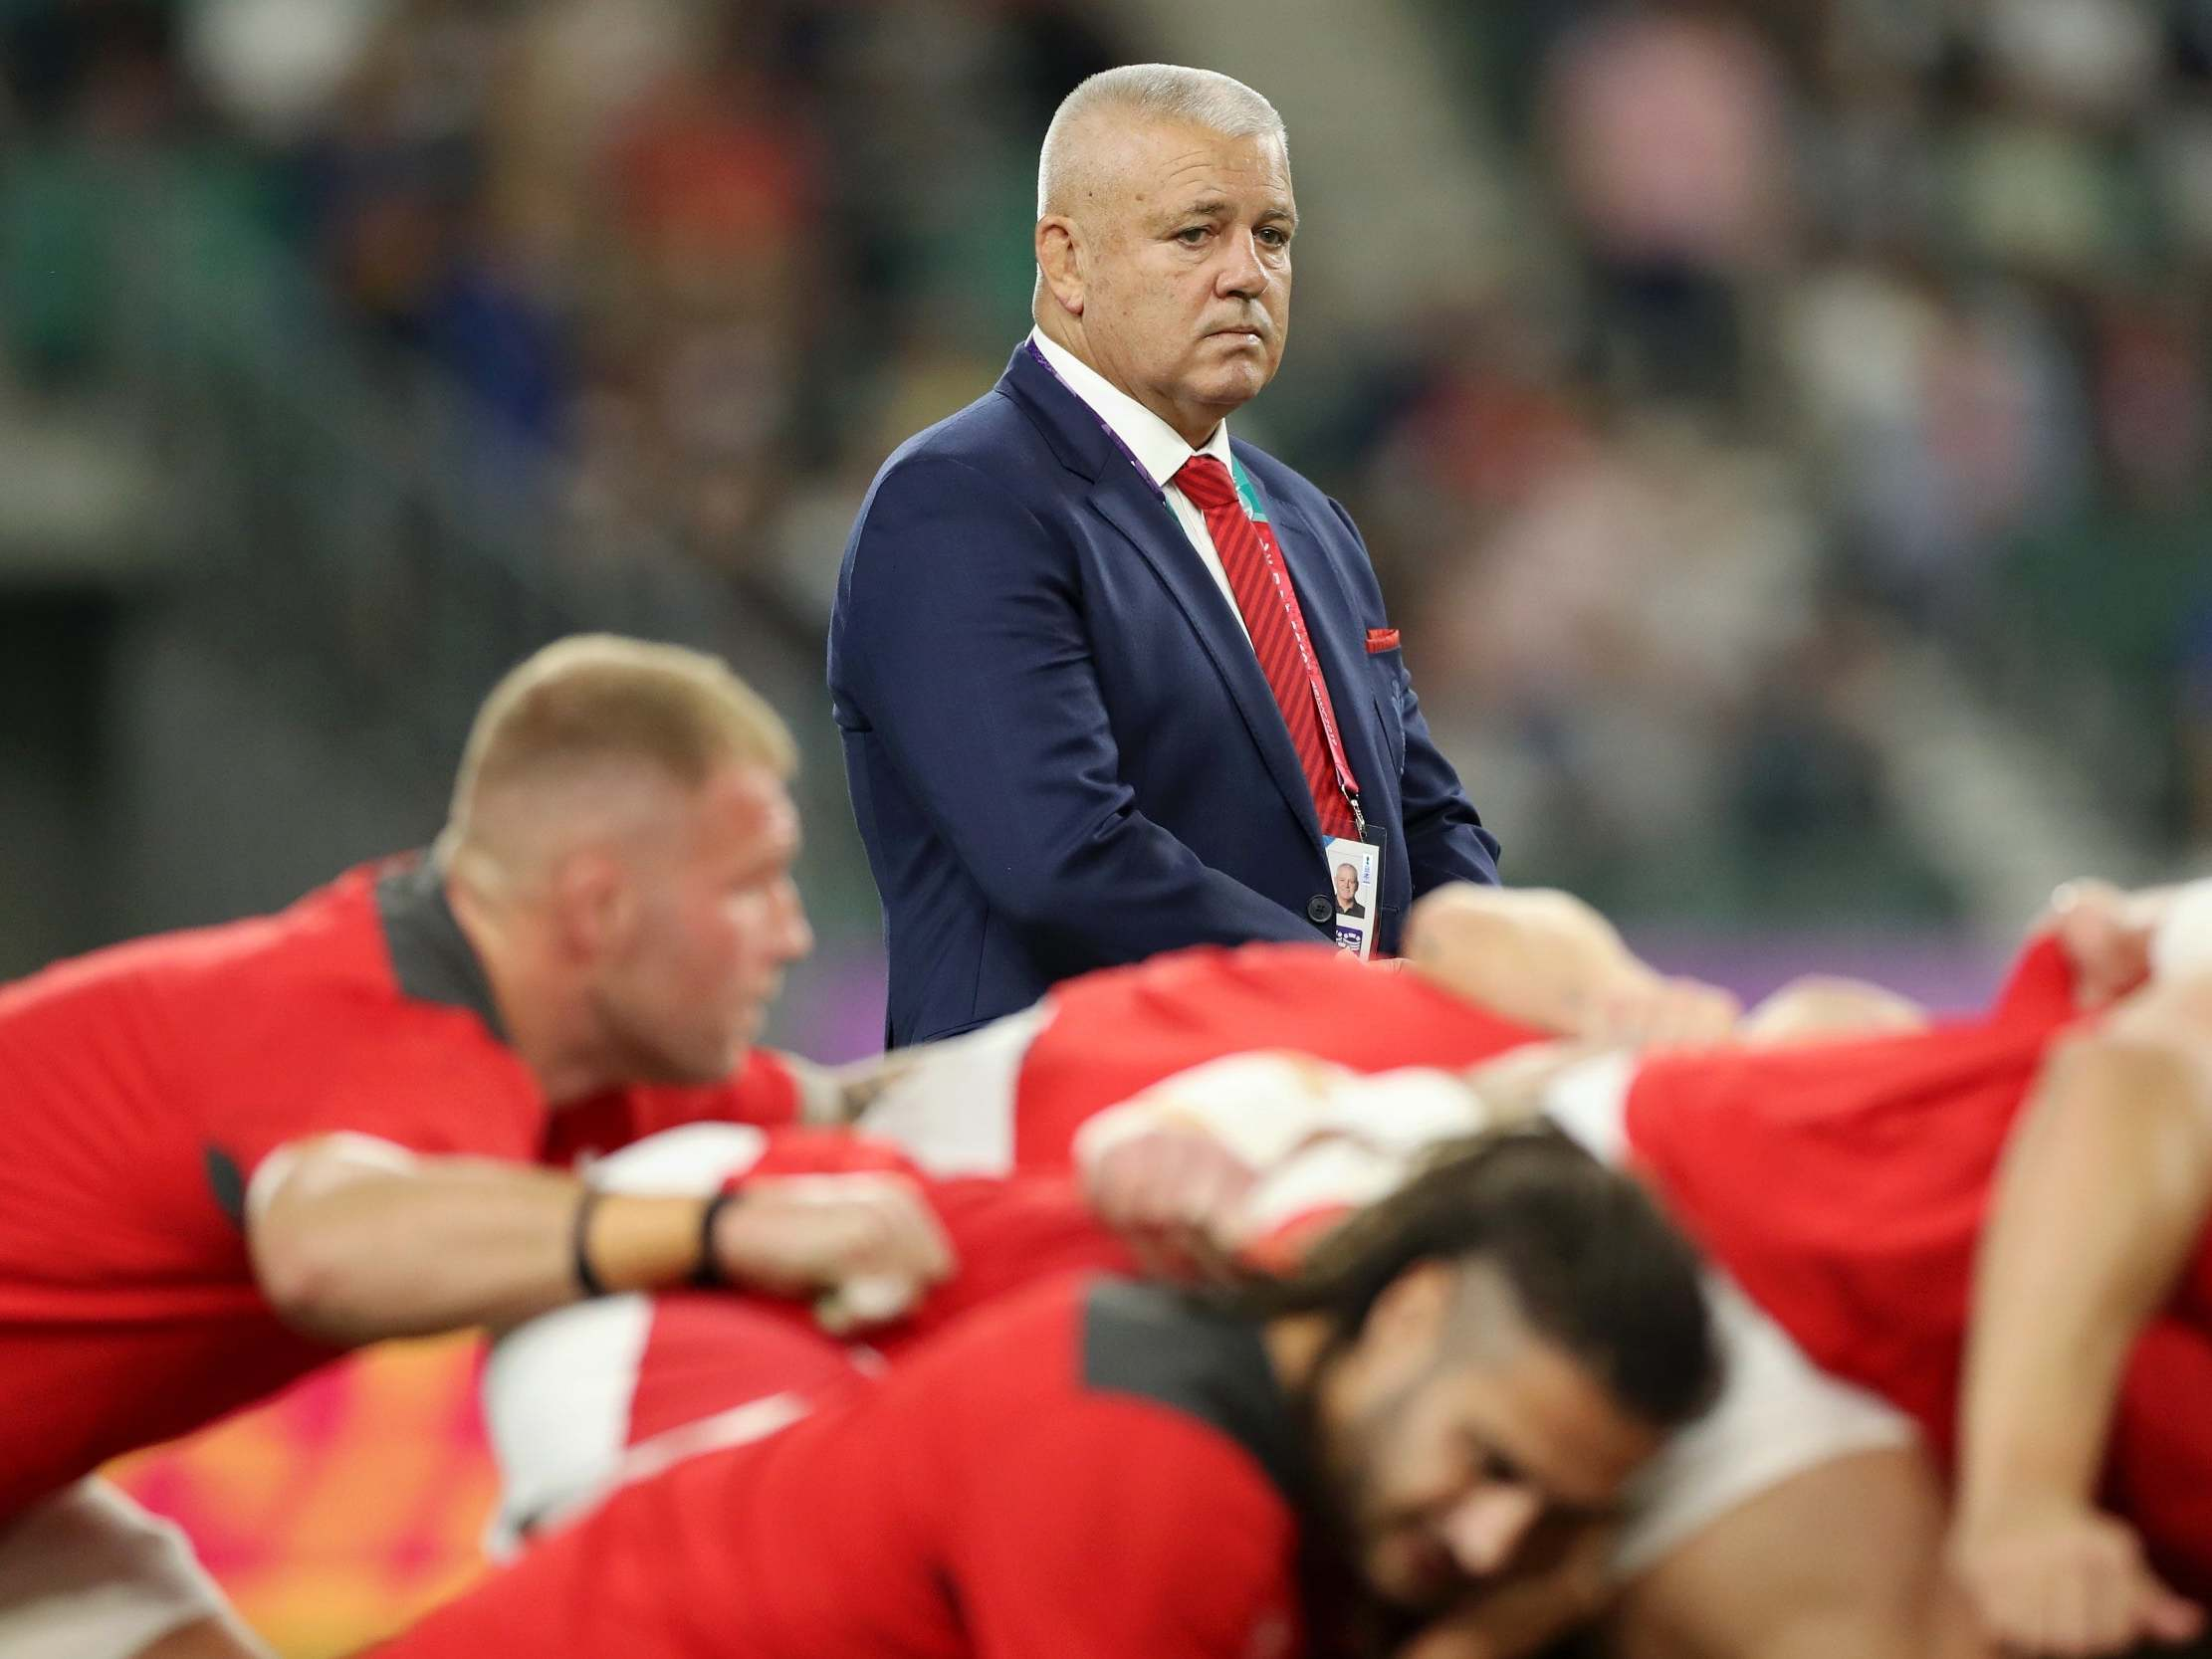 Rugby World Cup 2019: How to stream Wales vs Uruguay, what TV channel and how to watch